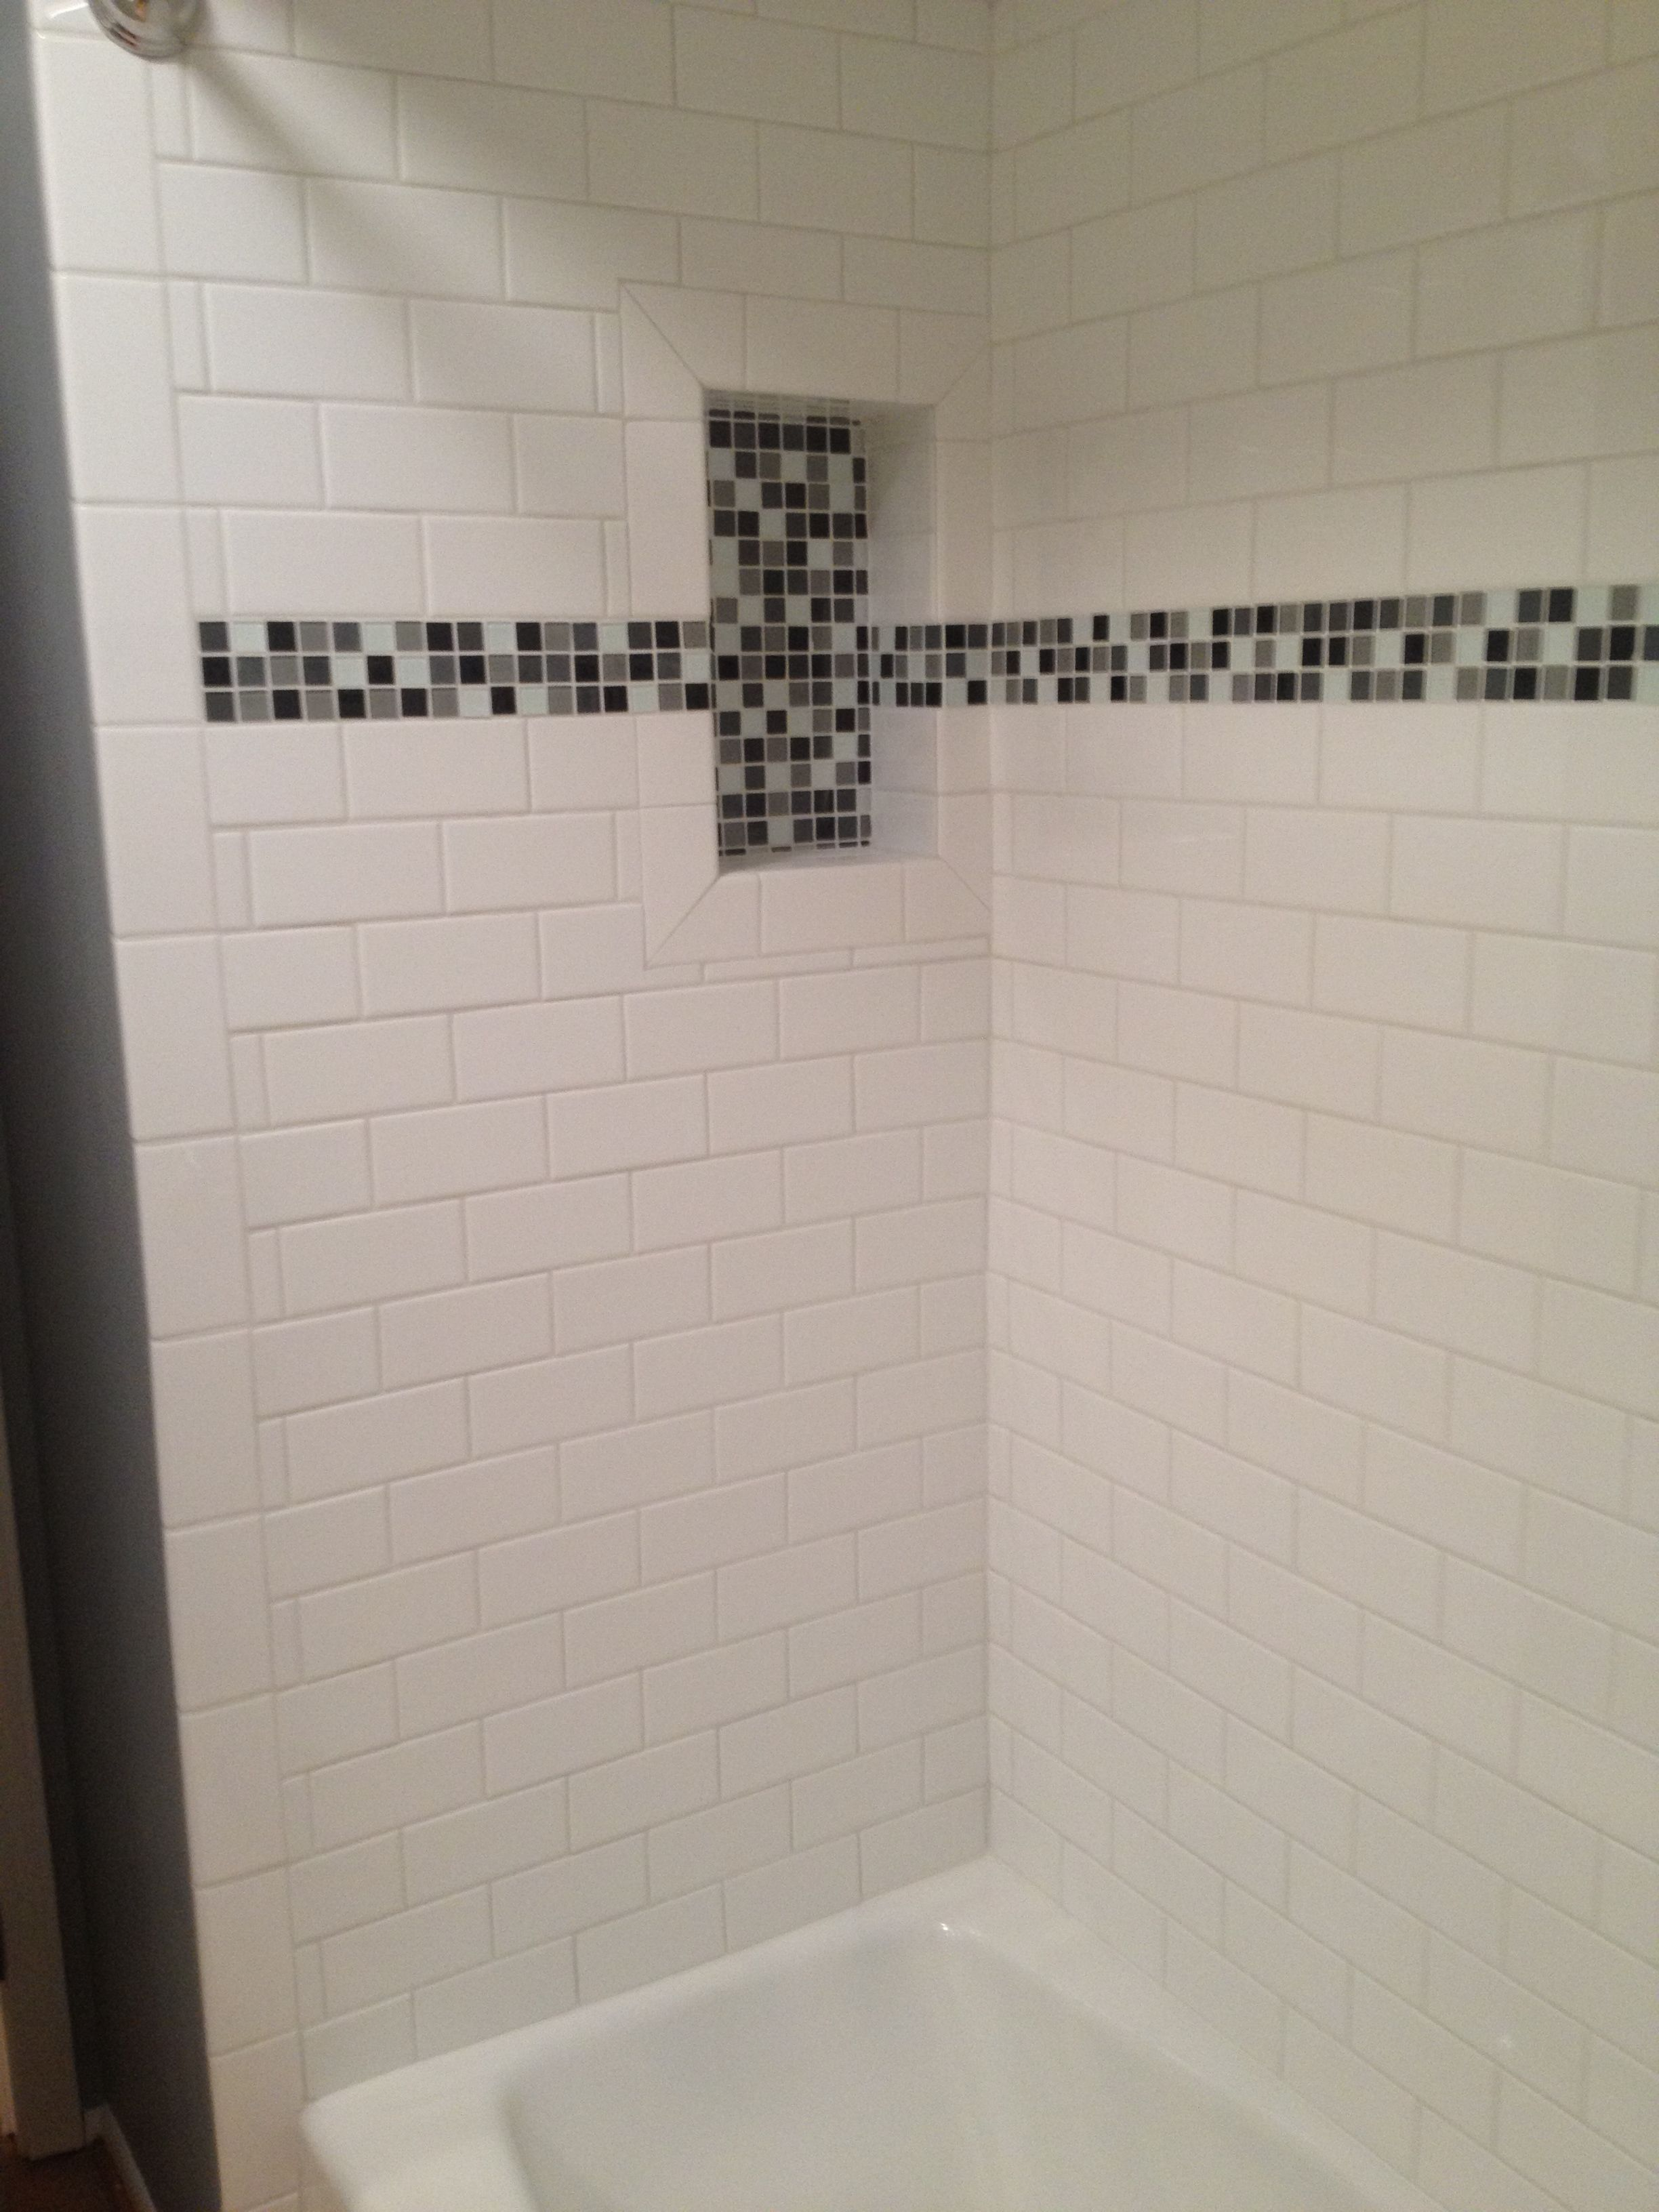 Add A Touch Of Style And Color To Your Shower With A Decorative Band And Recessed Niches Project Done By T Home Remodeling Contractors Home Remodeling Remodel [ jpg ]